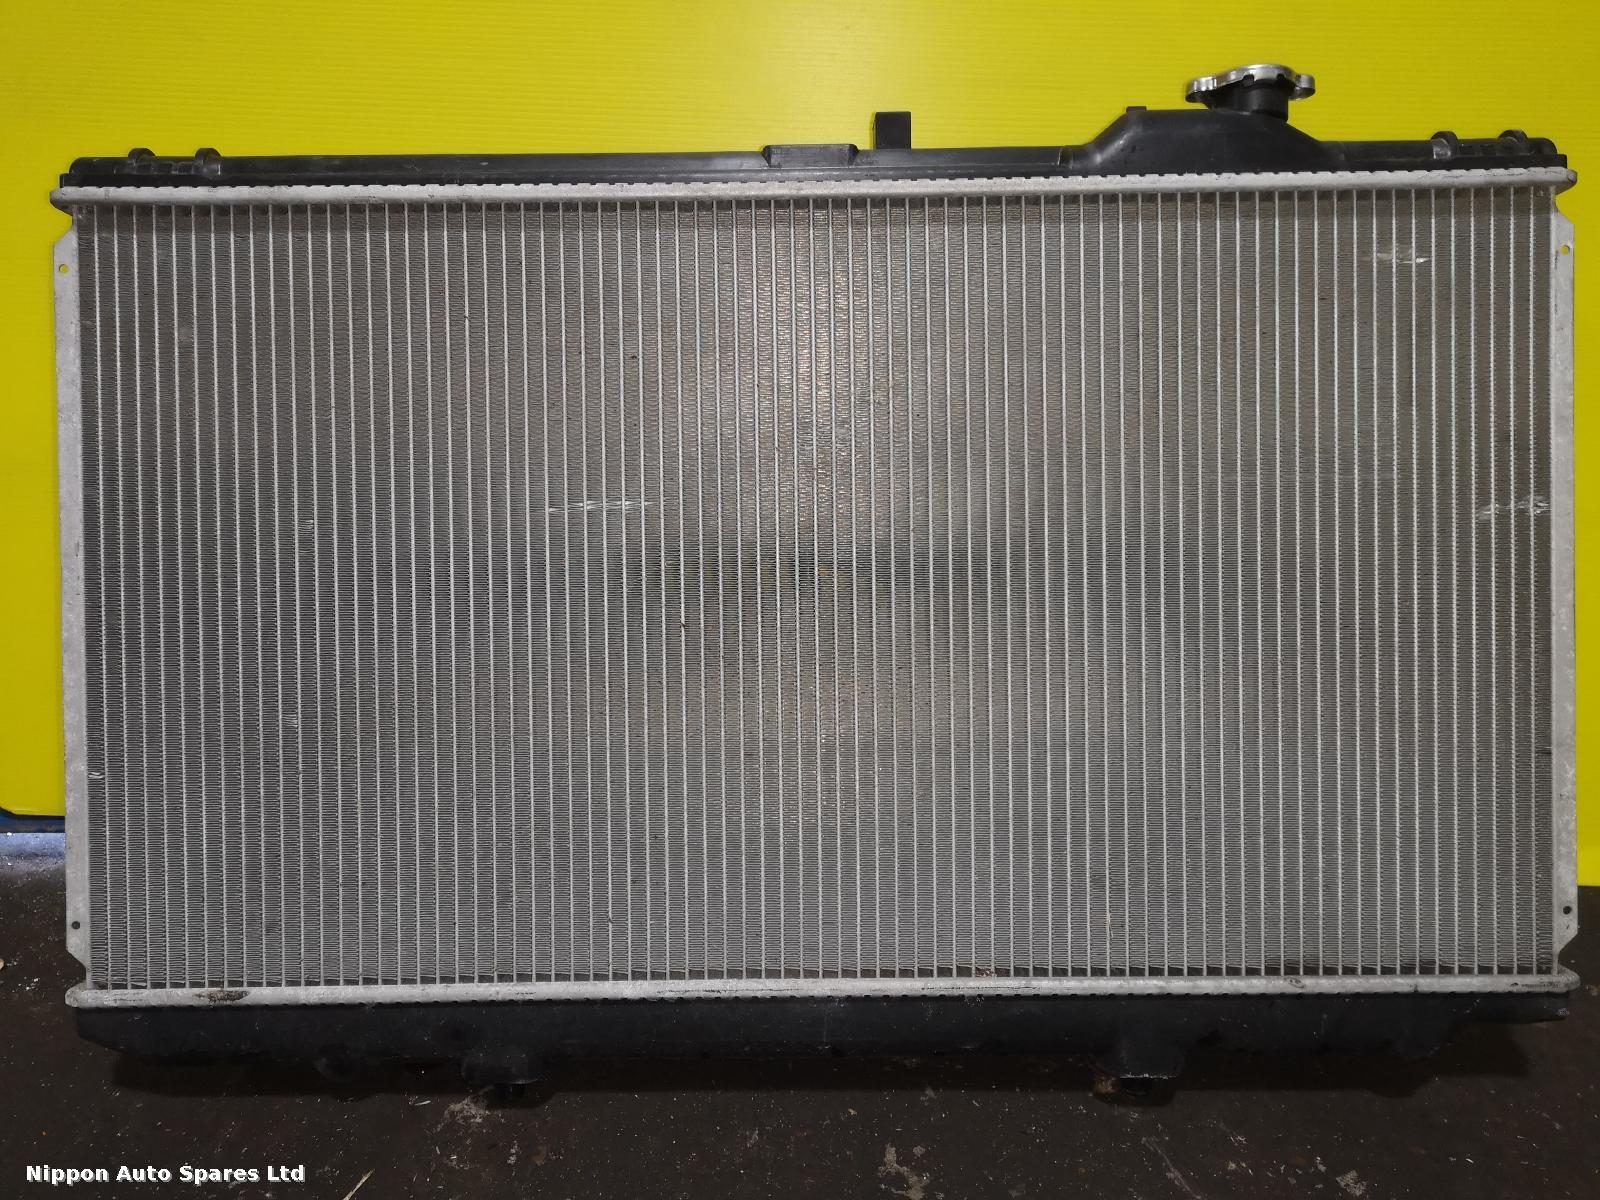 Toyota ARISTO Radiator TWIN TURBO WITH FANS: 56935